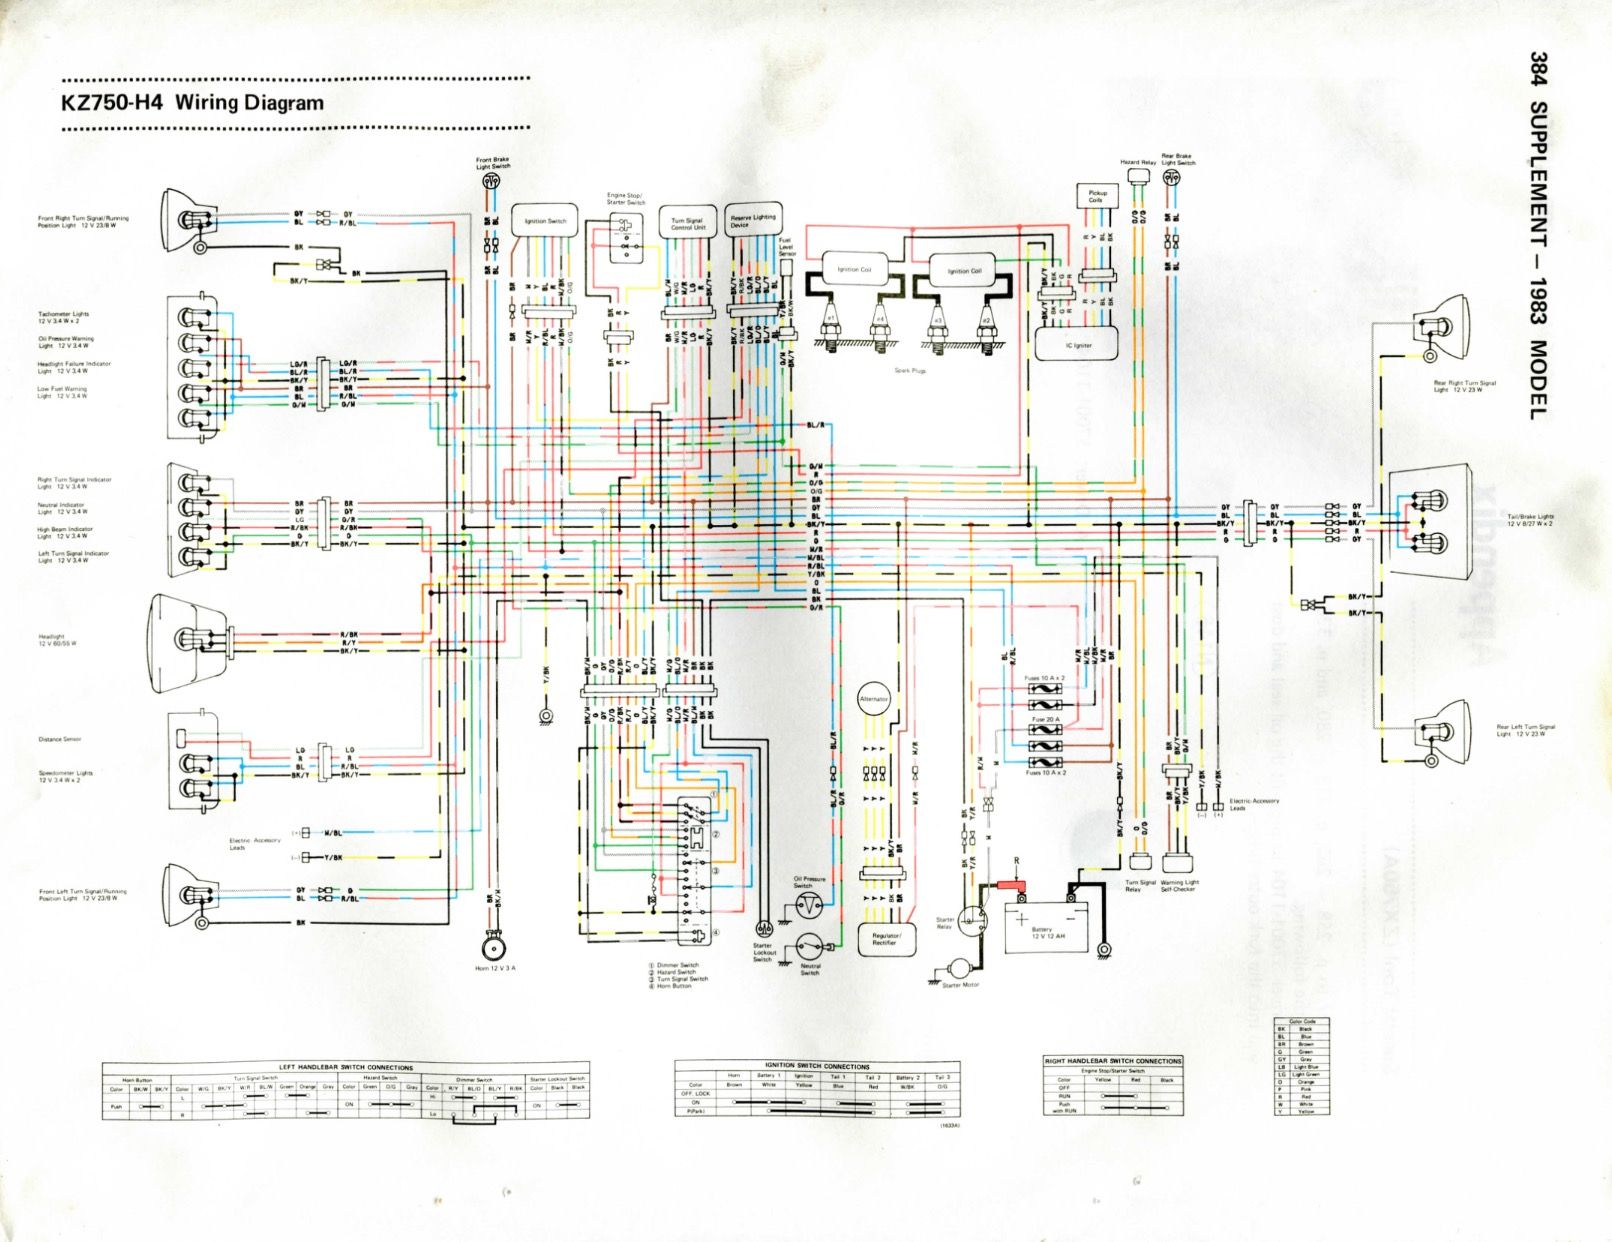 small resolution of kawasaki kz750 wiring diagram wiring diagram expert 1978 kawasaki k z 750 wiring diagram